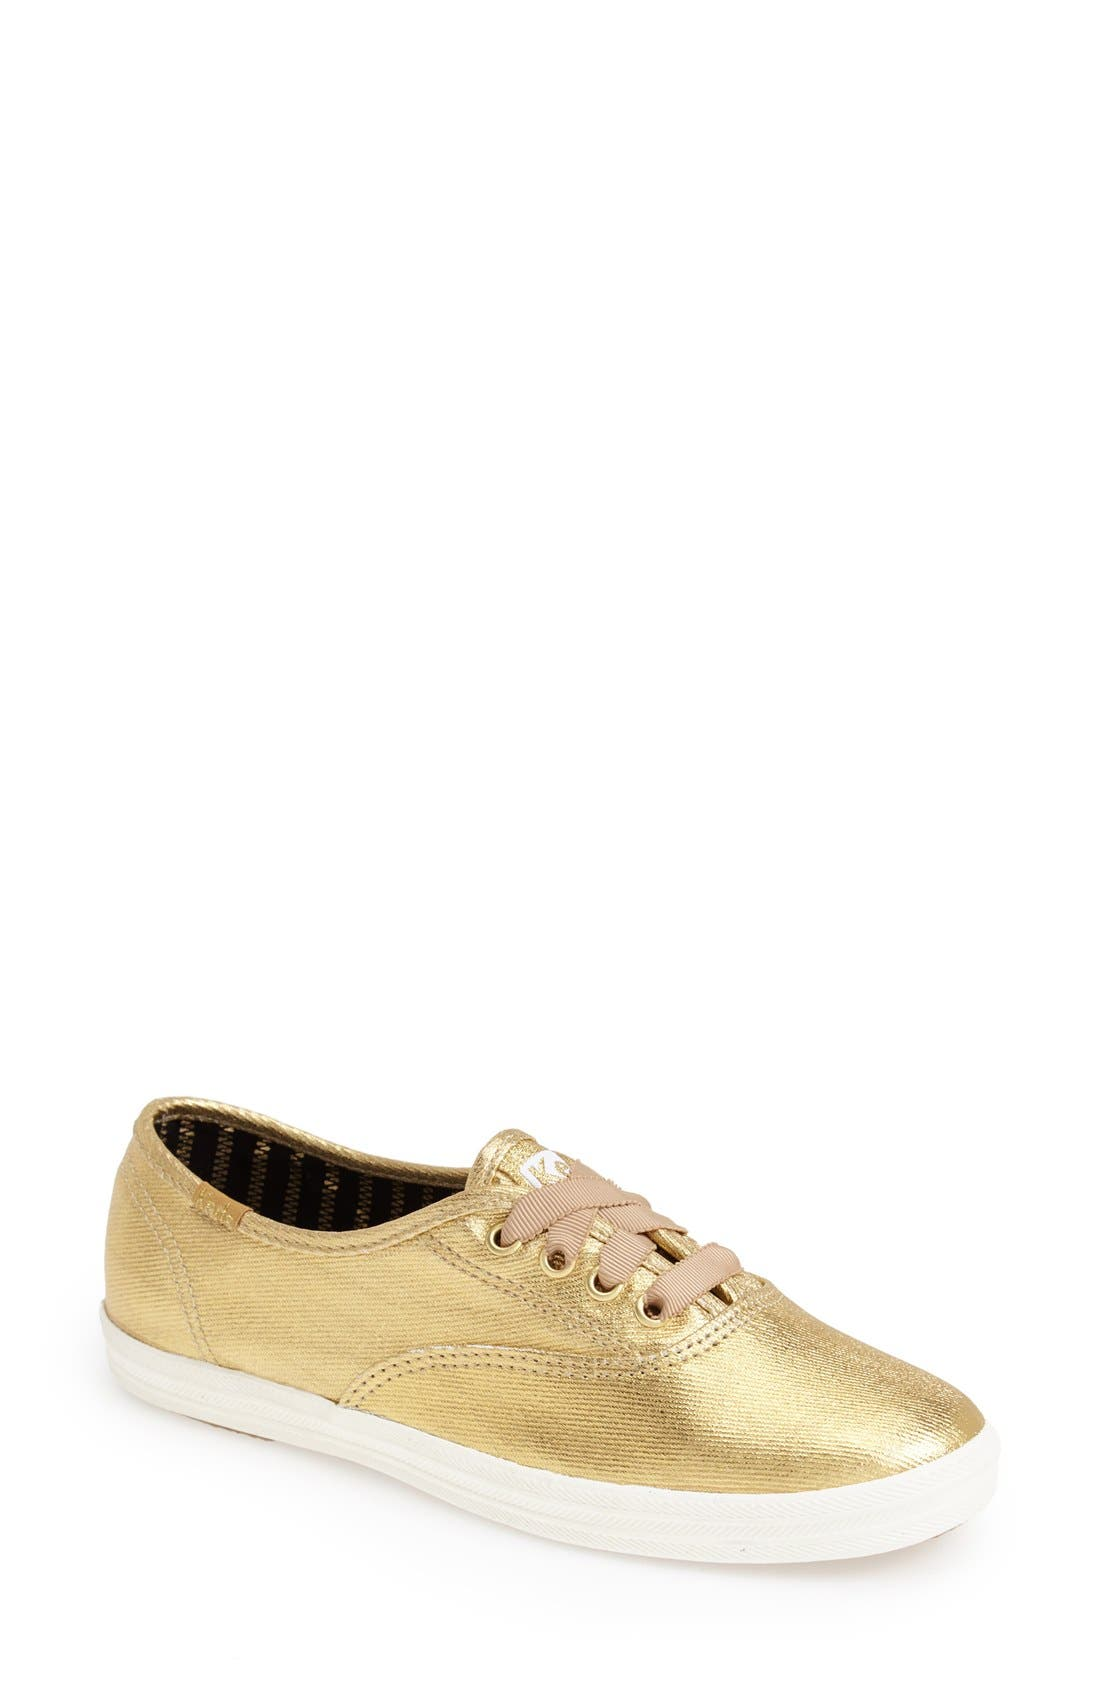 Main Image - Keds® 'Champion - Metallic' Sneaker (Women)